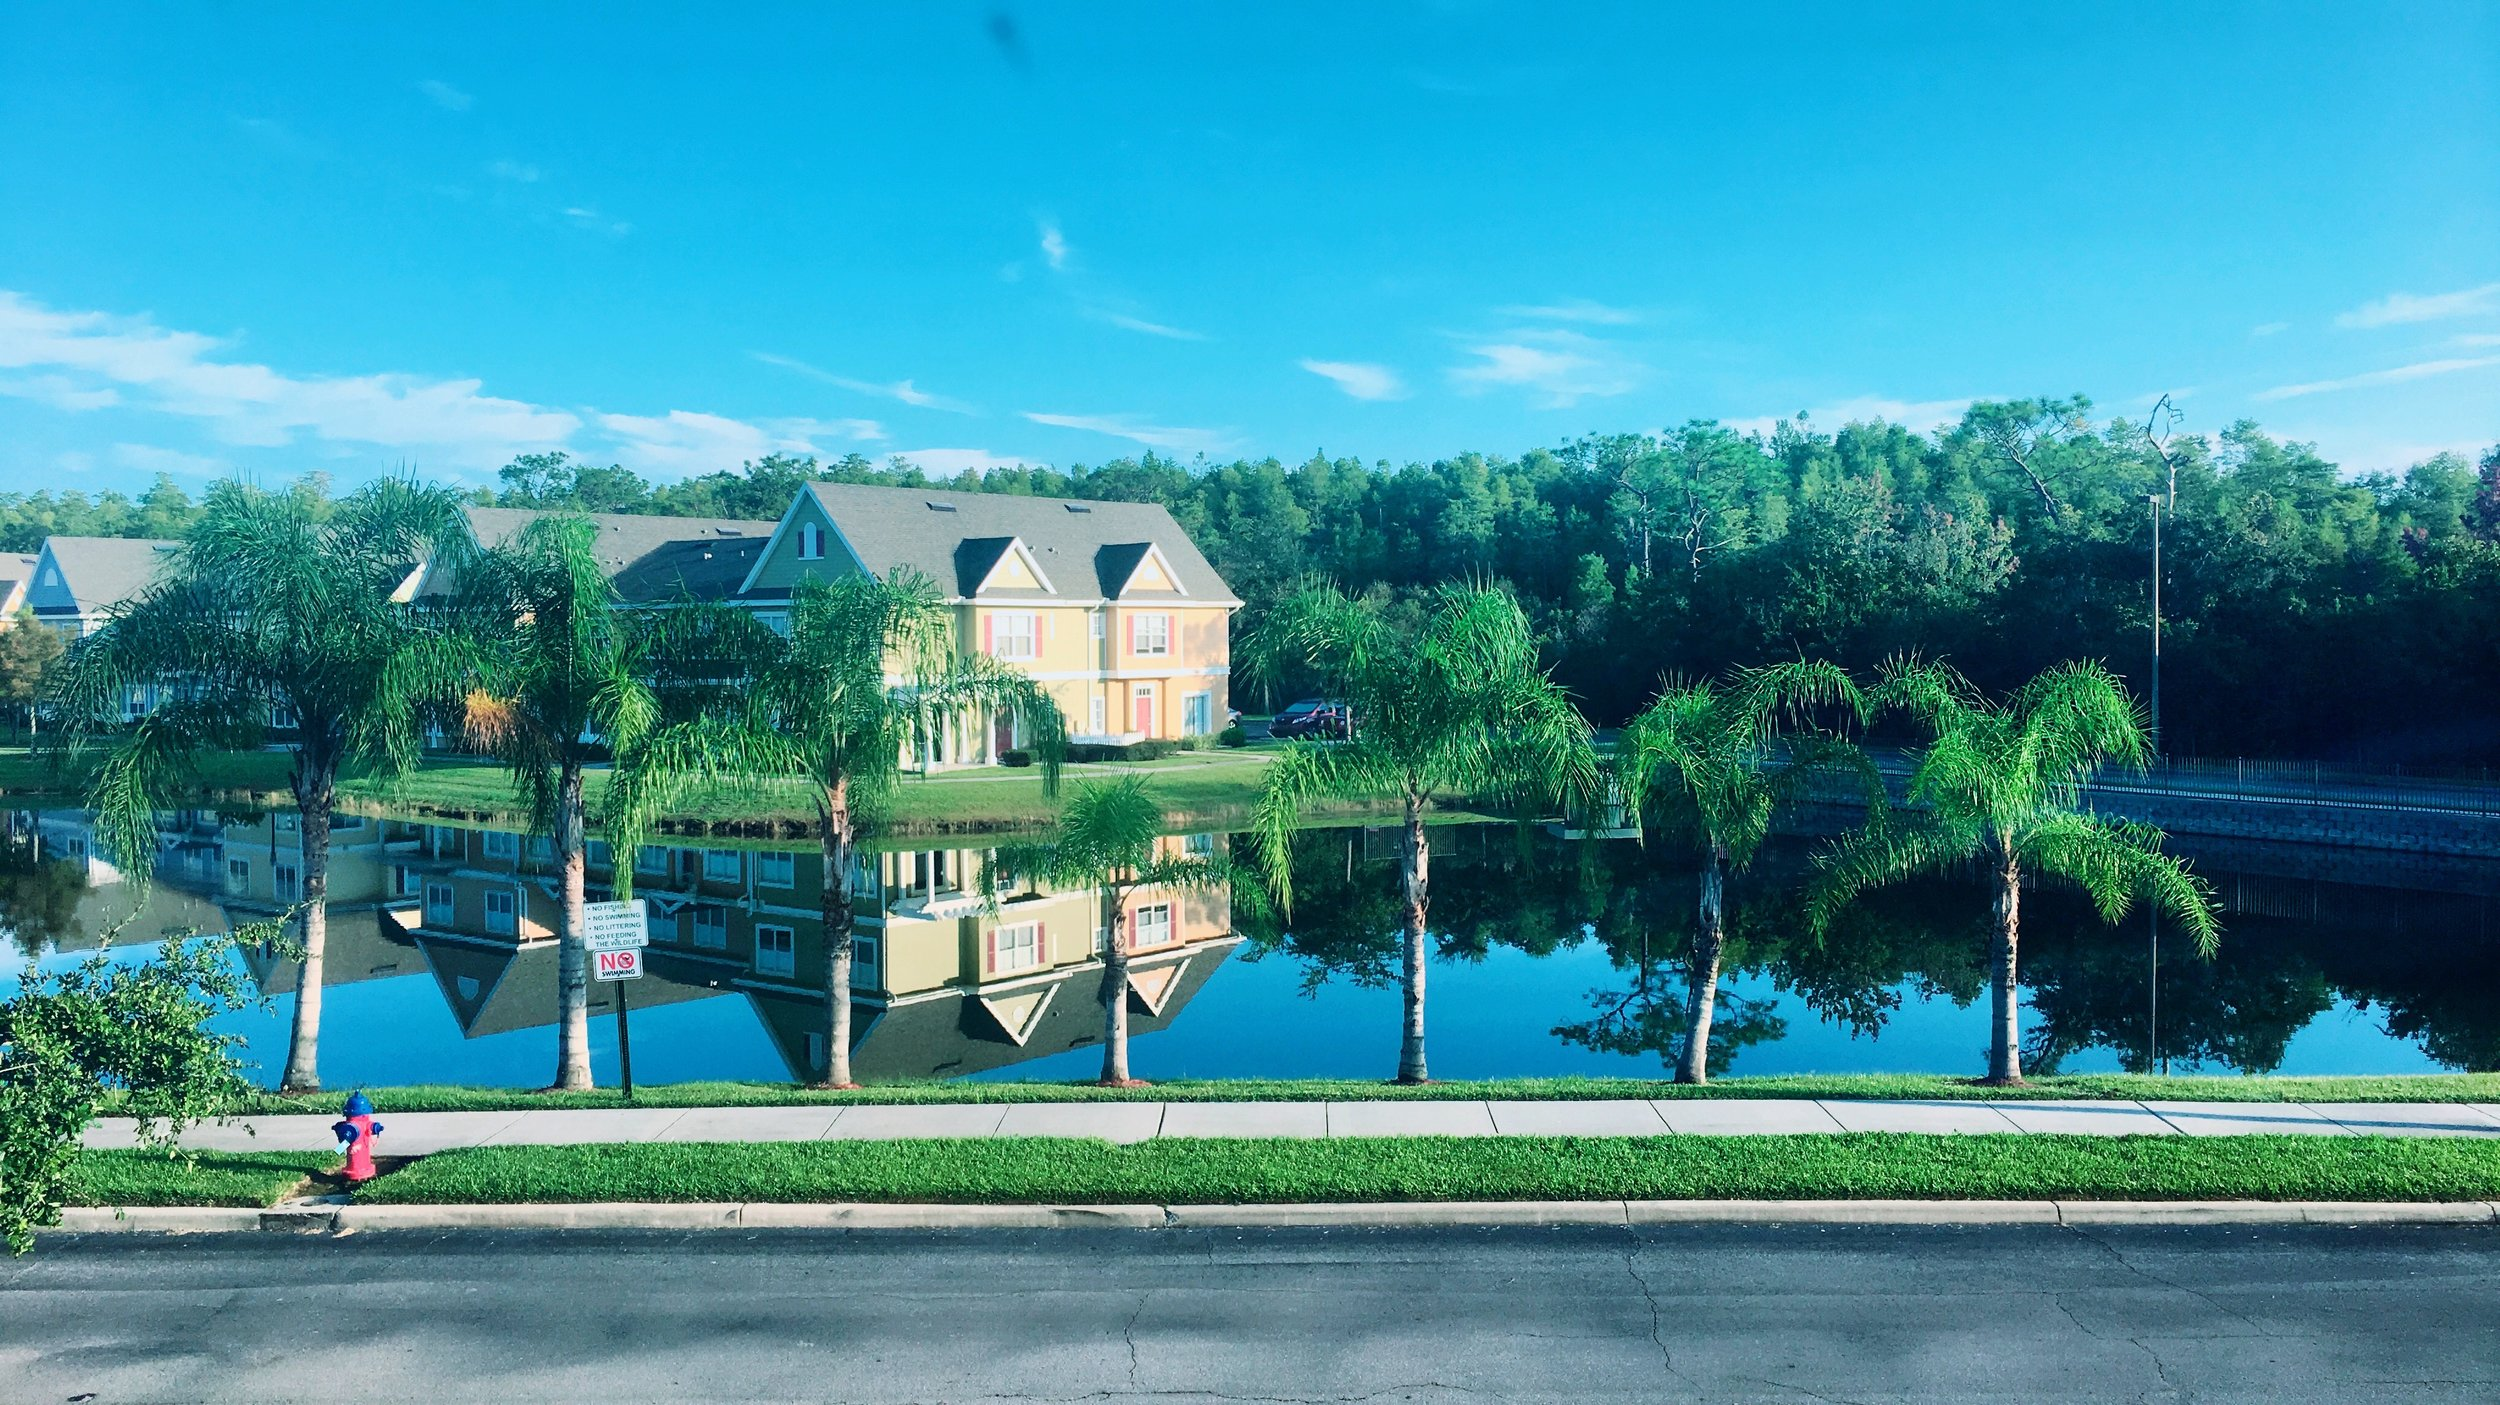 Beautiful Sunshine State - this is our view from our room when we went to Orlando for a weekend.